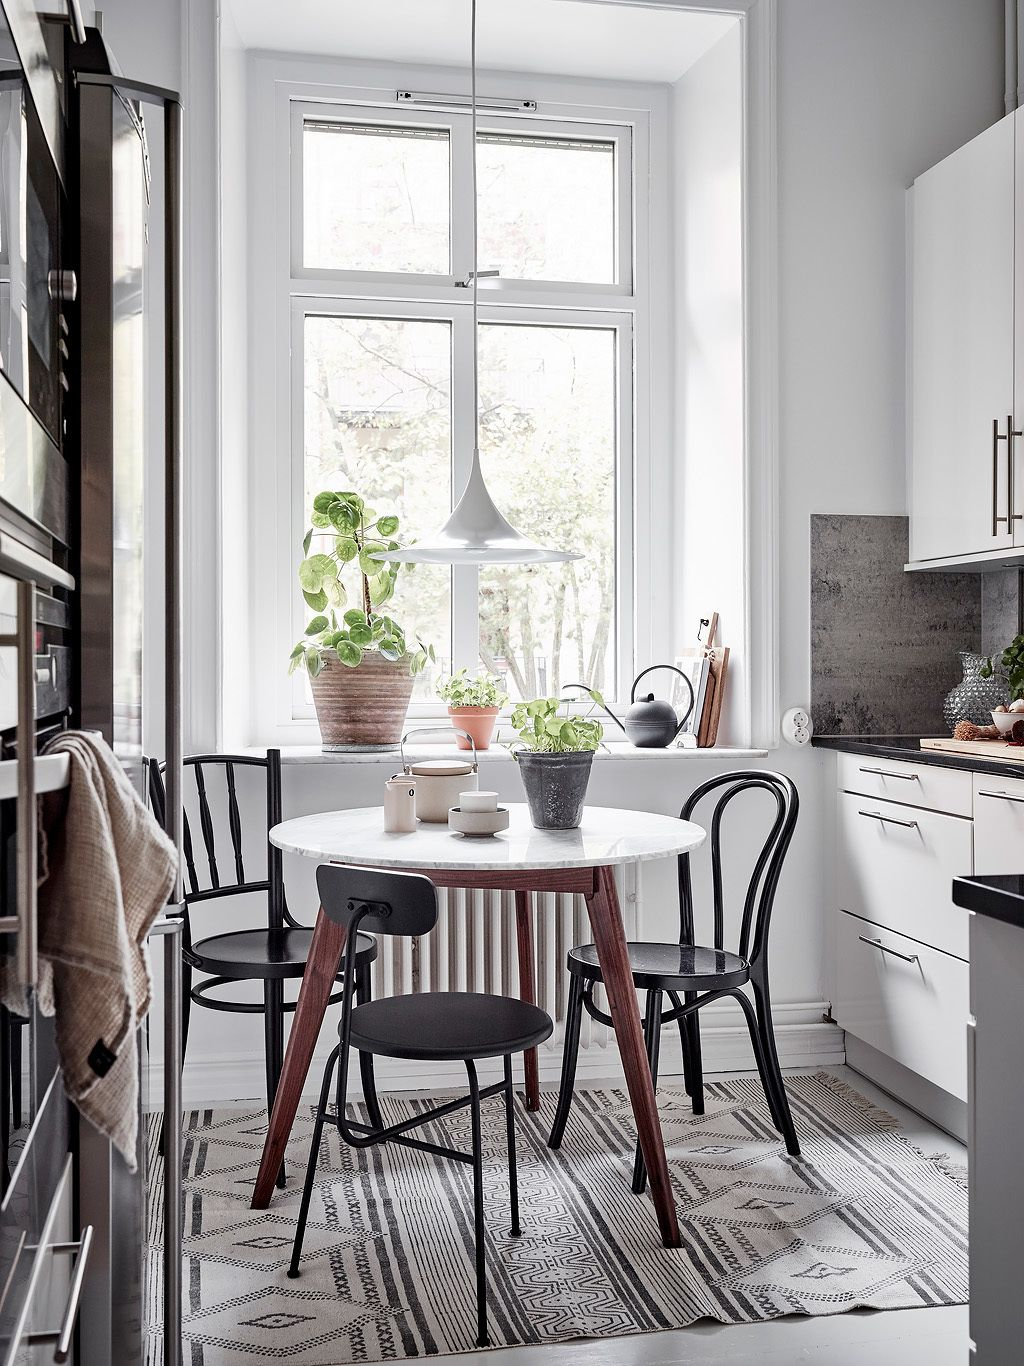 House Tour: Mixing Scandinavian Style and Pastels in a Kiev ...